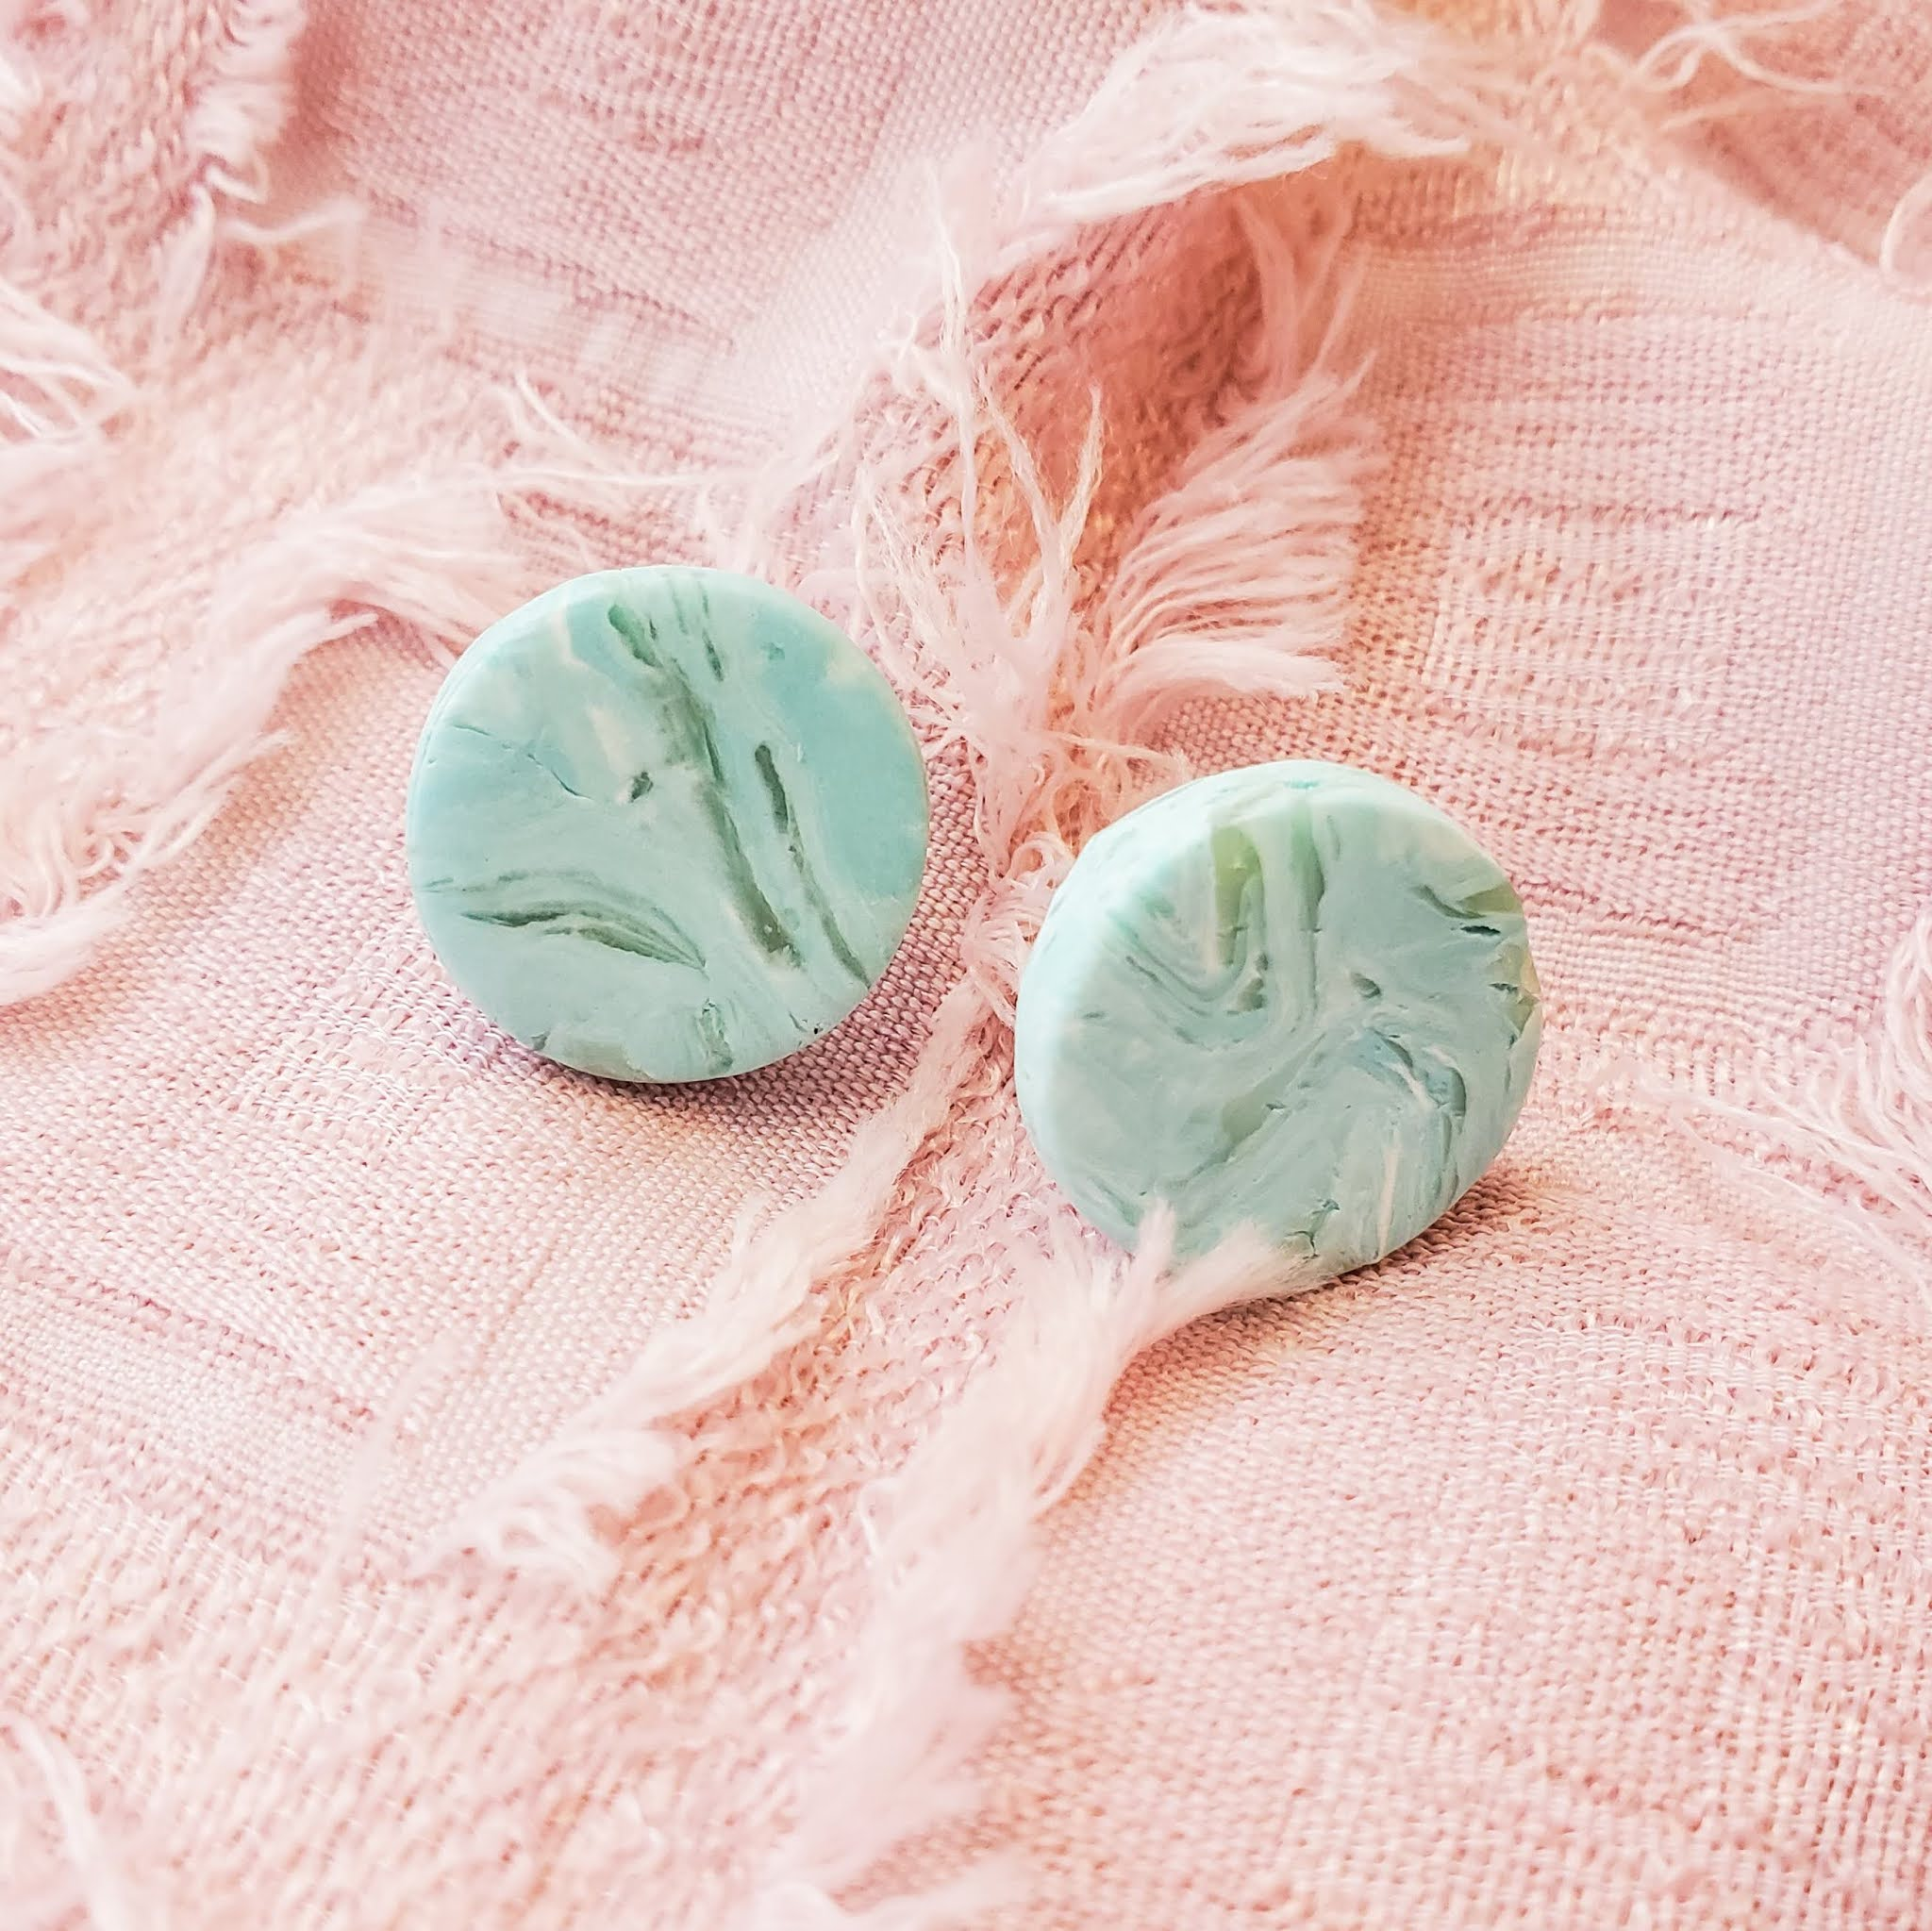 Polymer clay statement earrings - mini stella studs